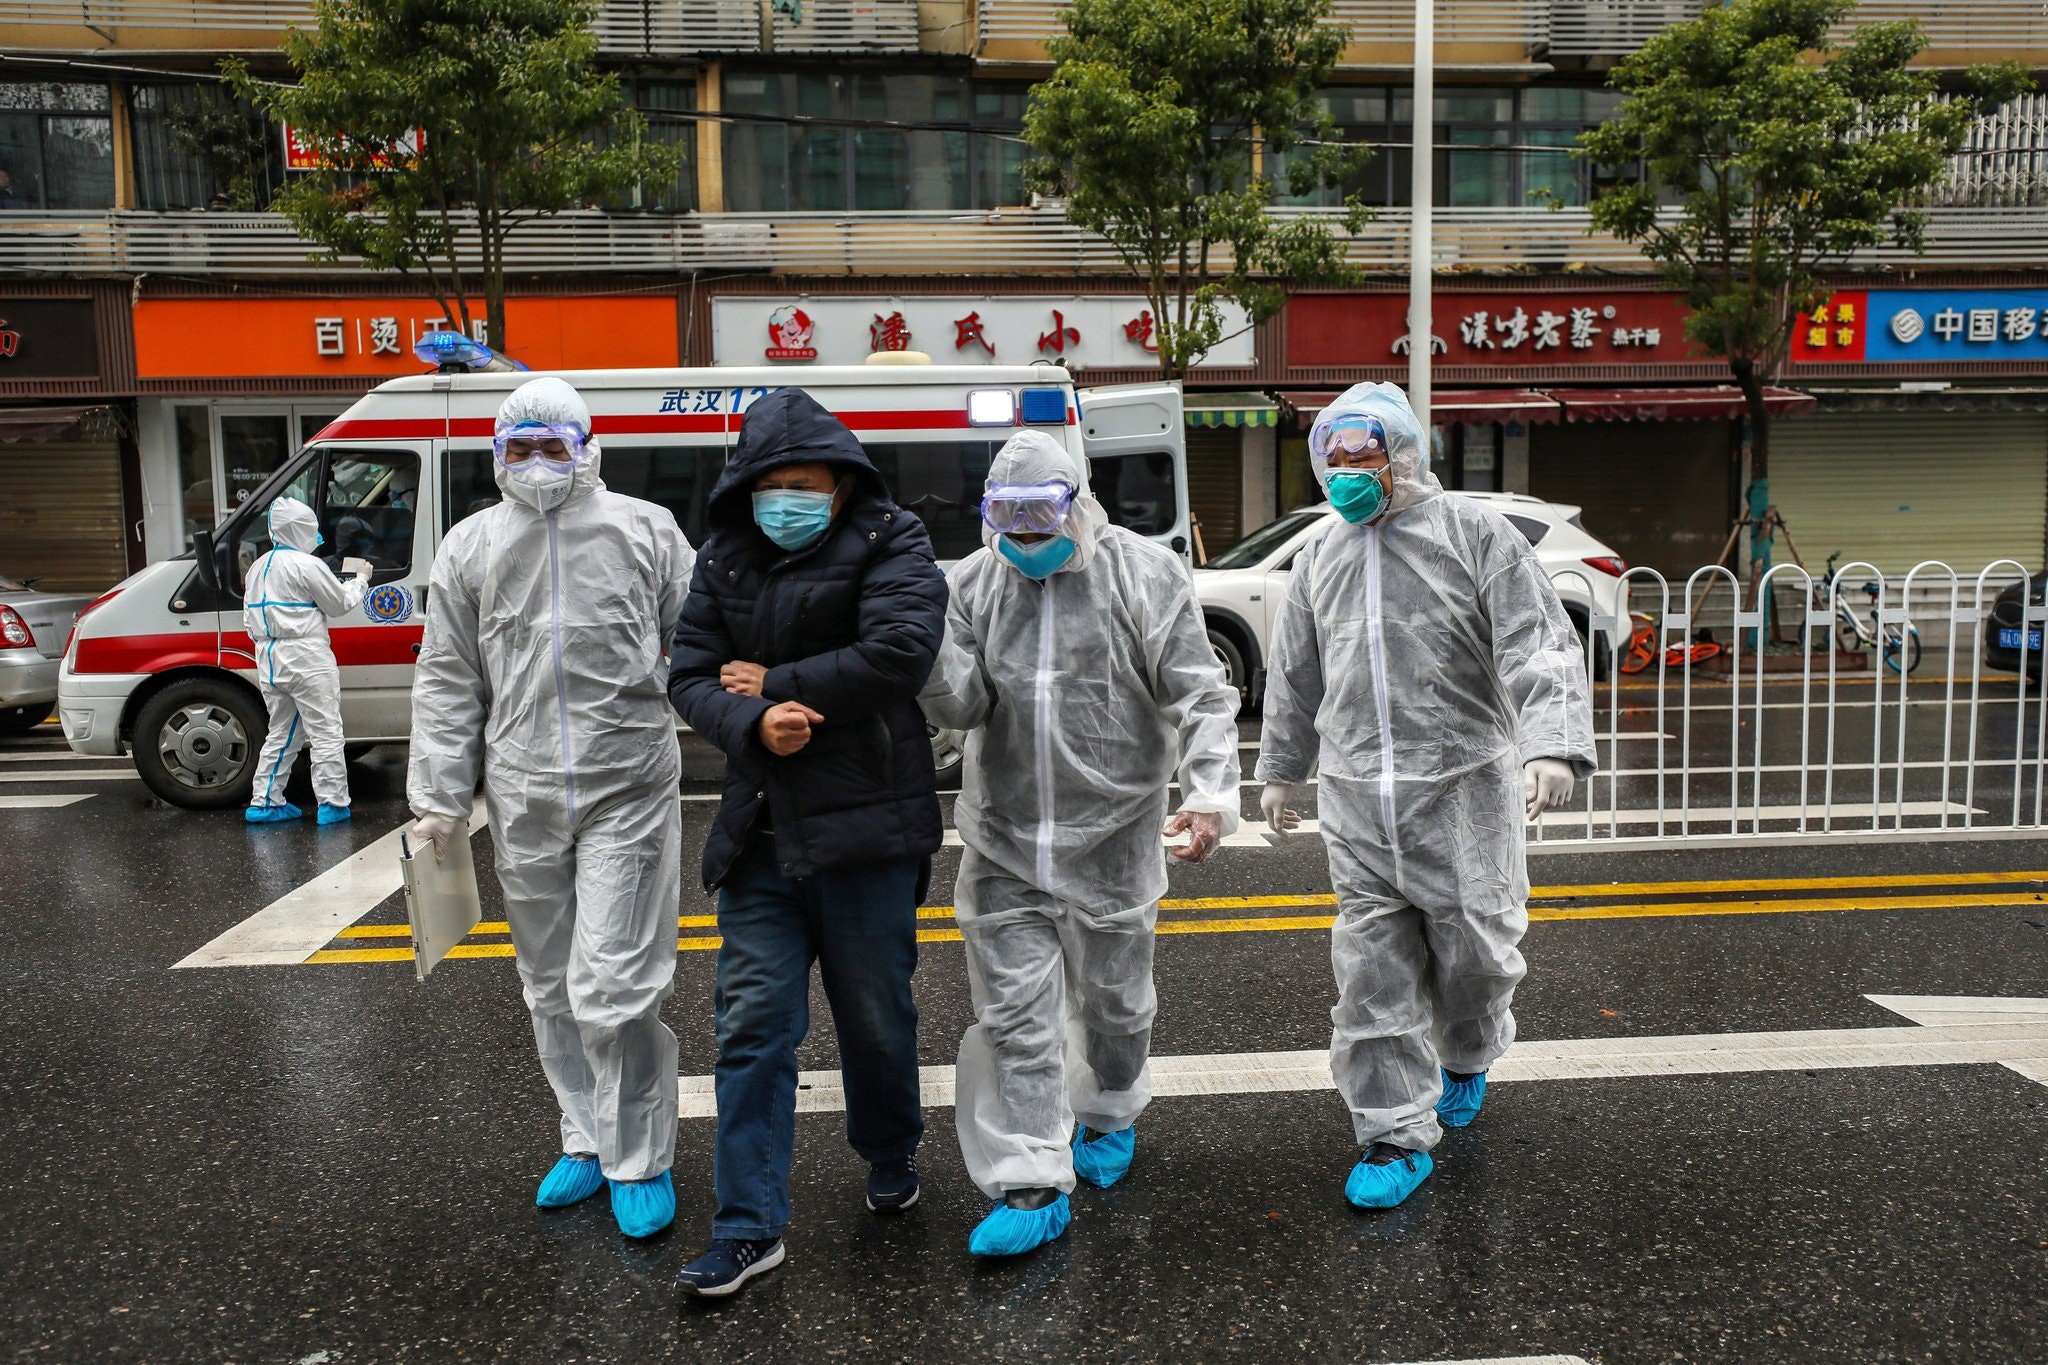 Coronavirus Spreads Across All Of China As Death Toll Rises To 170